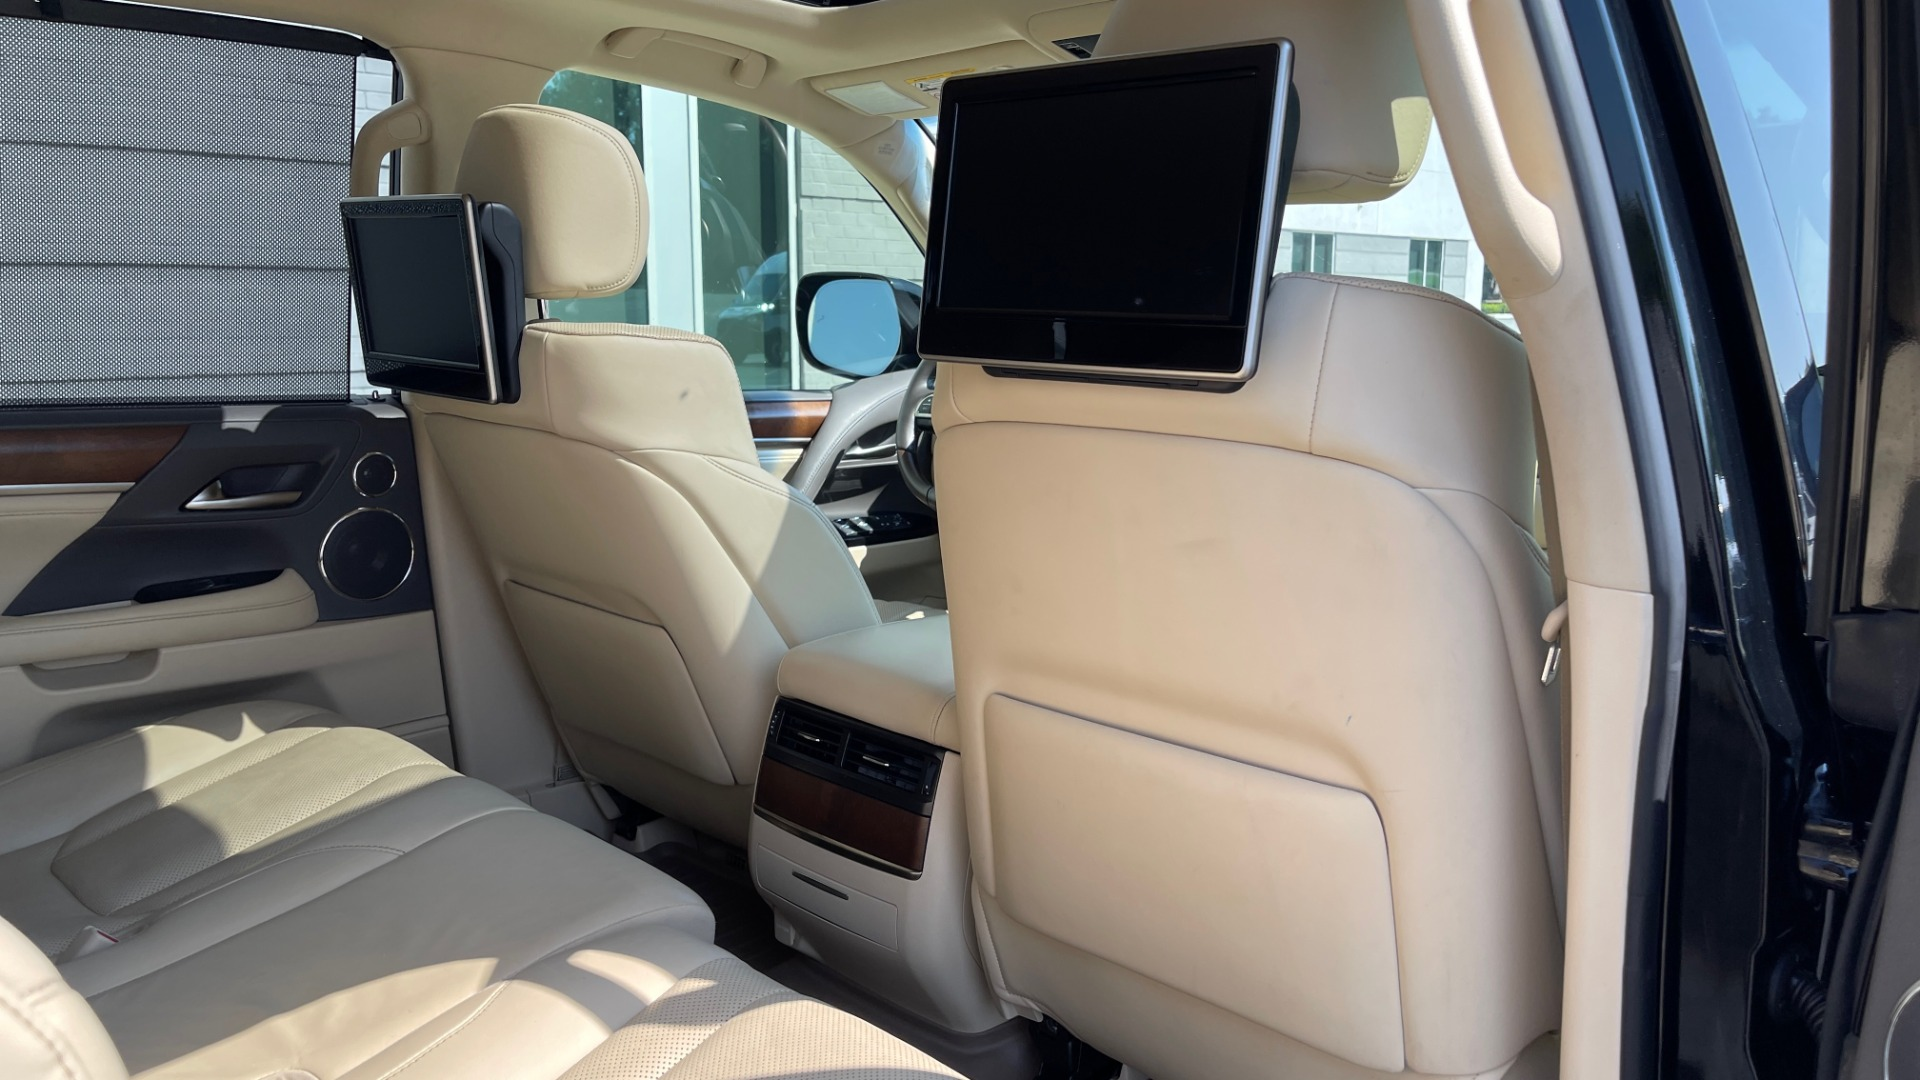 Used 2017 Lexus LX 570 LUXURY / 5.7L V8 / NAV / SUNROOF / 3-ROW / DVD / REARVIEW for sale $63,995 at Formula Imports in Charlotte NC 28227 67